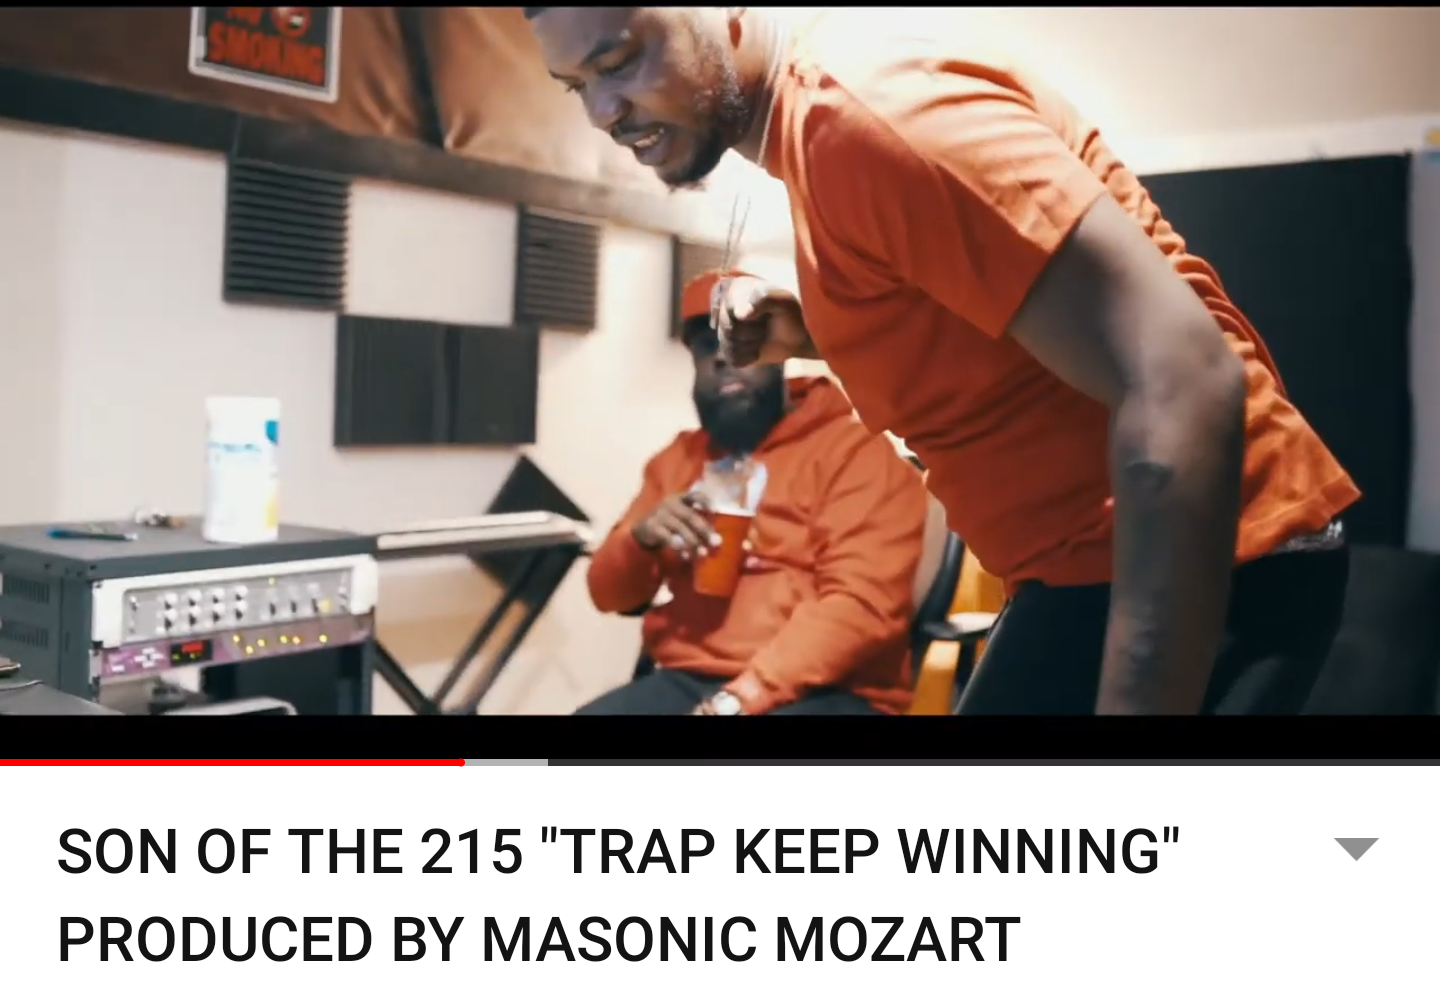 """SON OF THE 215 """"TRAP KEEP WINNING"""" PRODUCED BY MASONIC MOZART"""